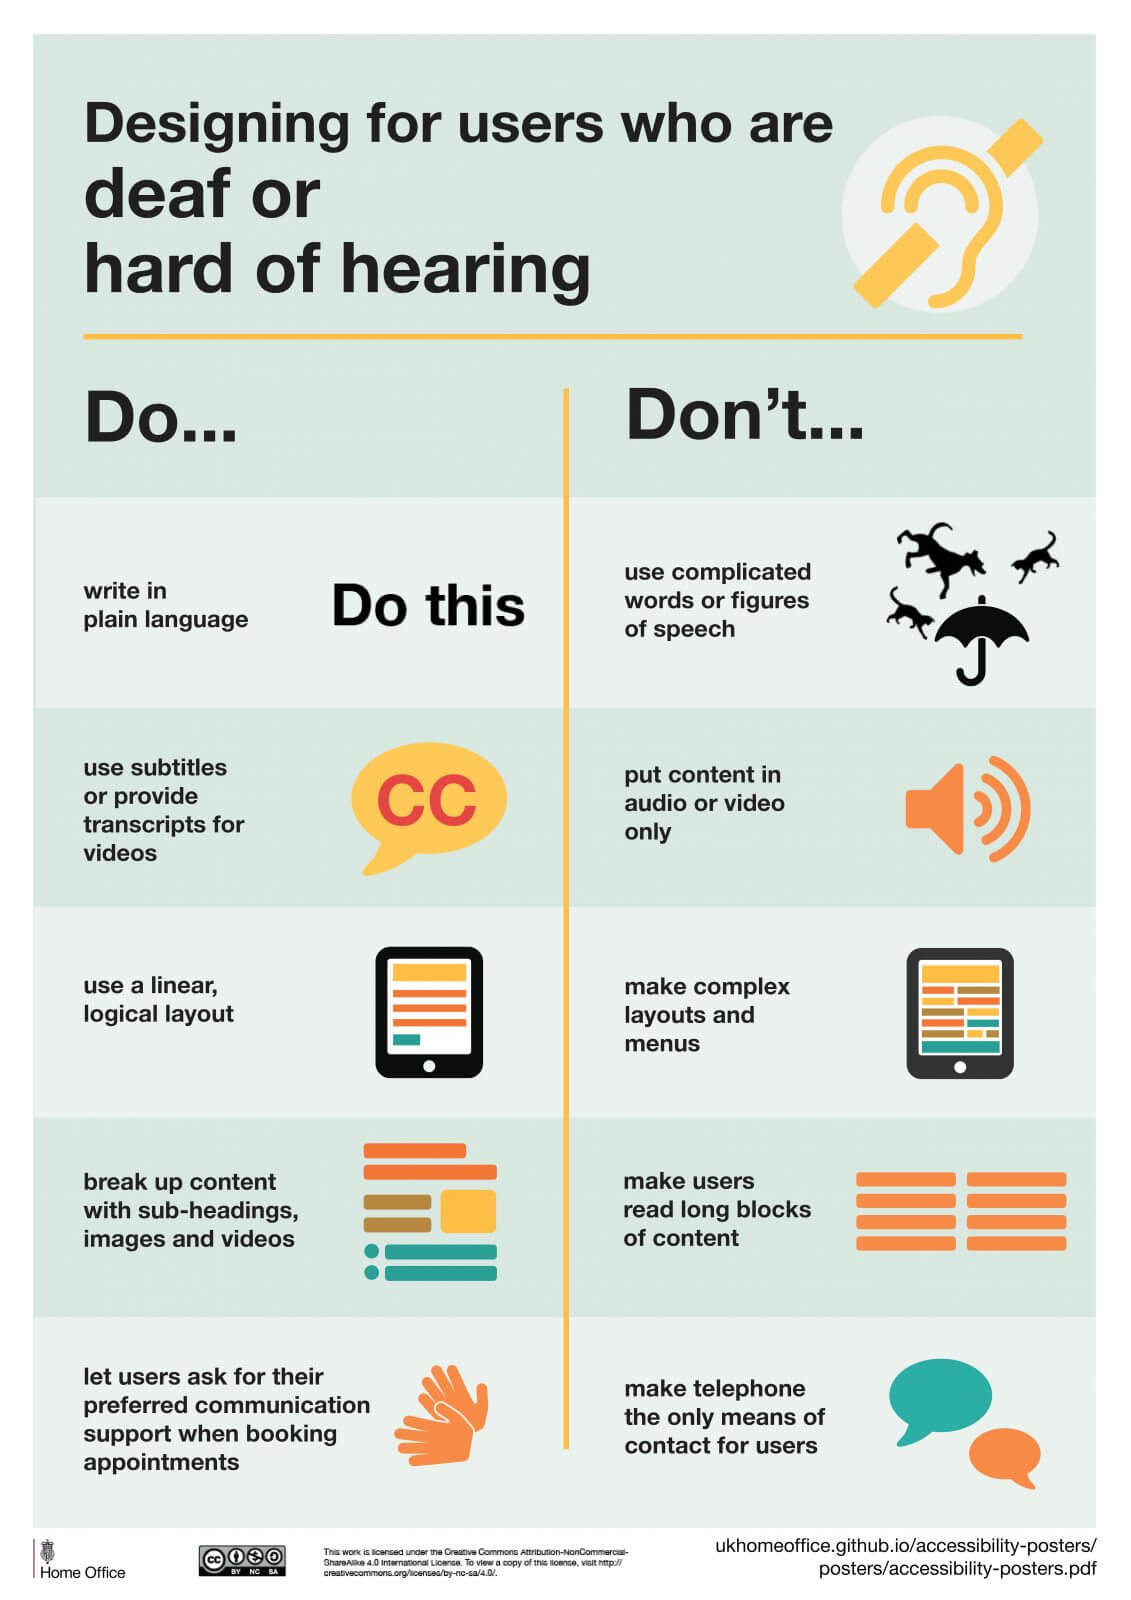 GOV.UK Designing For Users Who Are Deaf